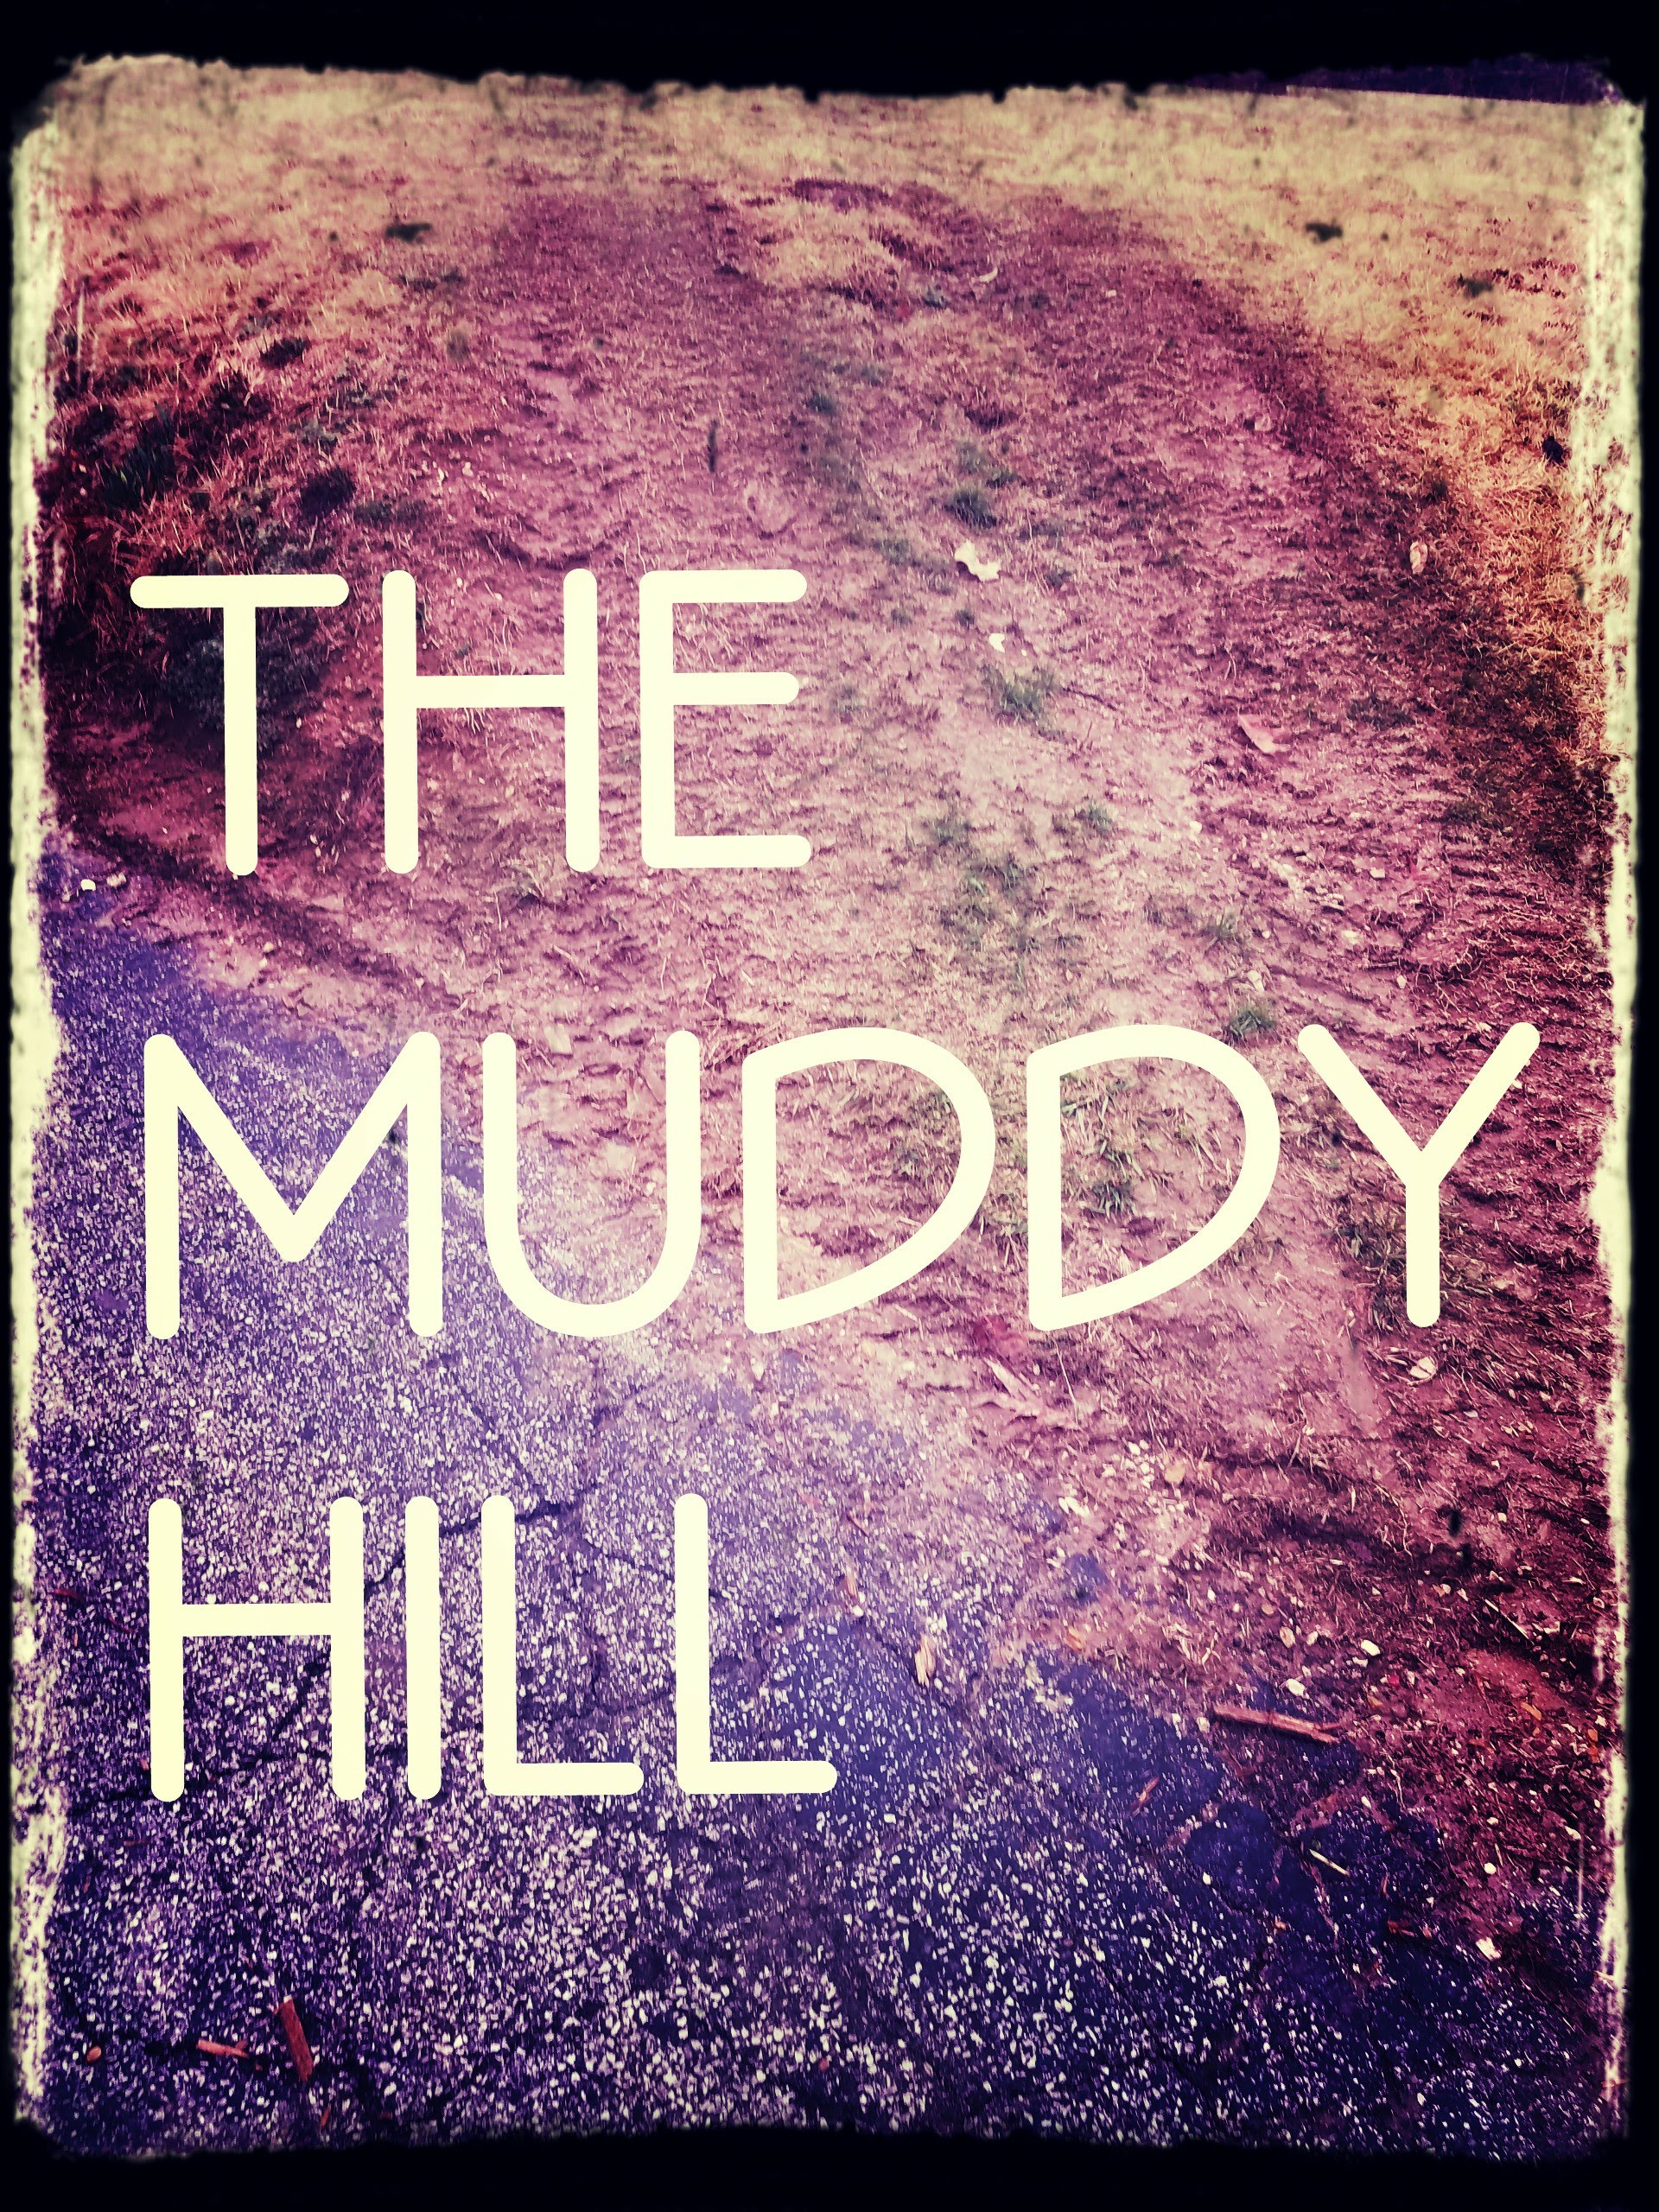 The Muddy Hill